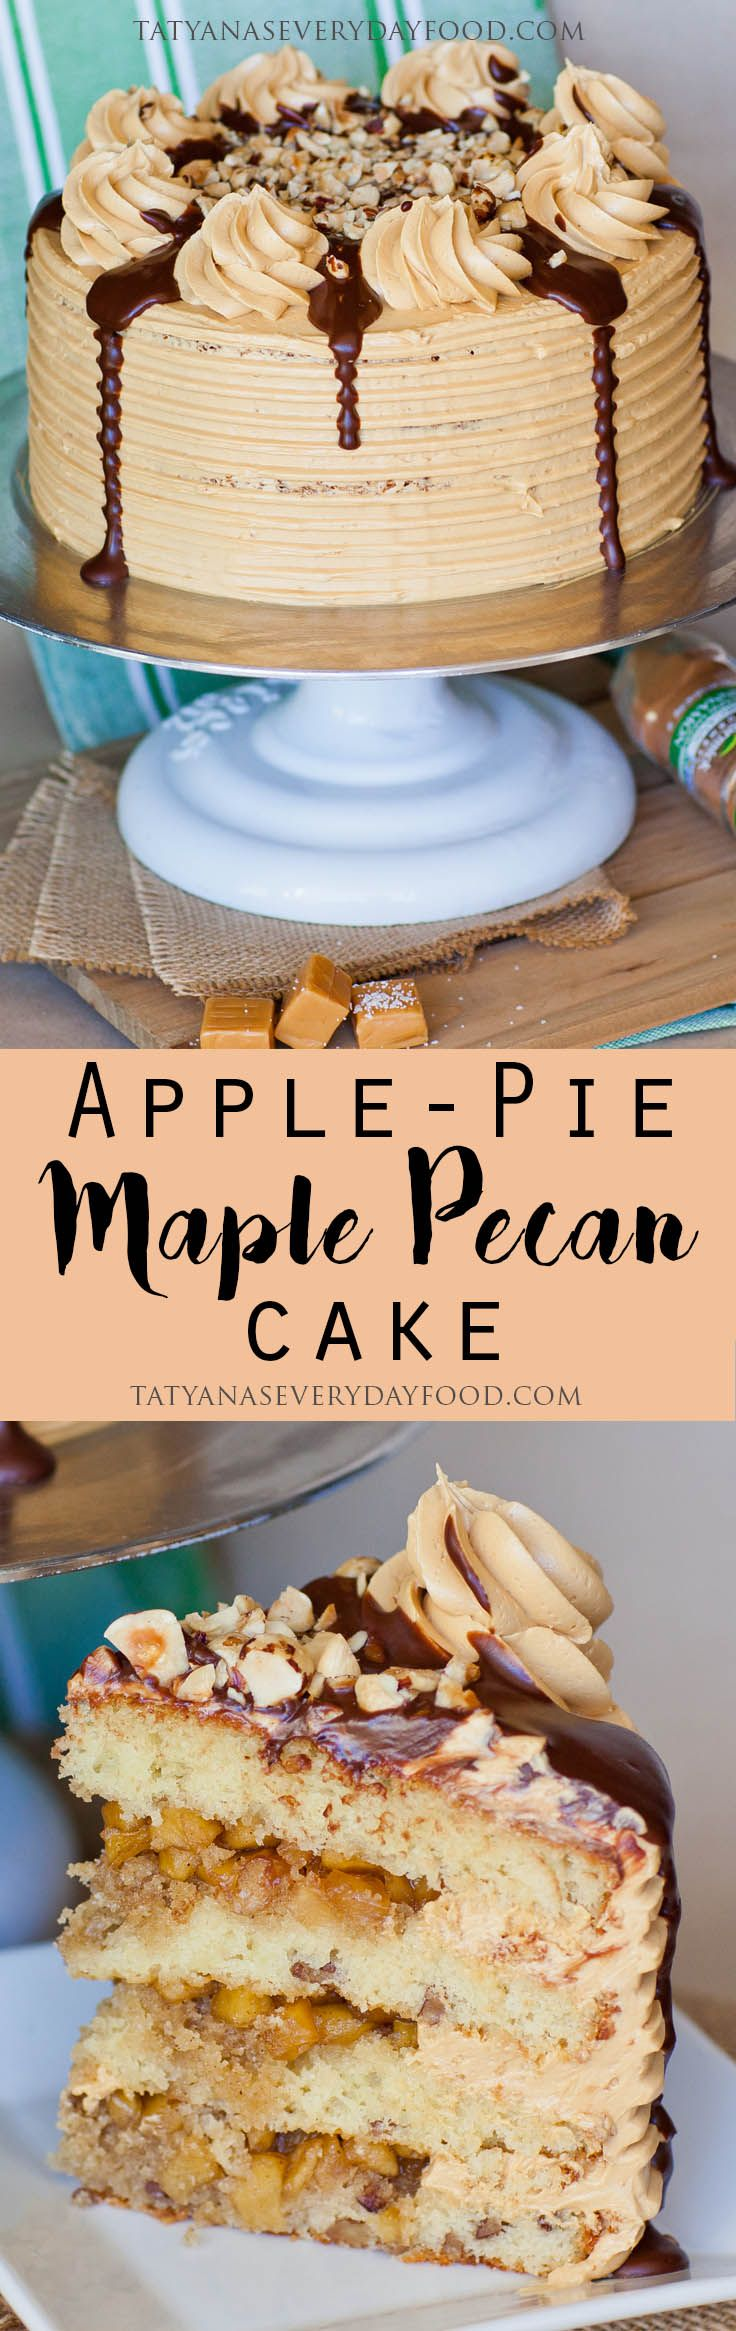 This is the ultimate fall and Thanksgiving cake! My 'Apple Pie Maple Pecan Cake' combines all the amazing flavors of fall into one spectacular cake! I add maple syrup extract and chopped pecans to vanilla cake, fill the center with an apple pie filling and frost the cake with my favorite 'Salted Caramel Frosting'. View …